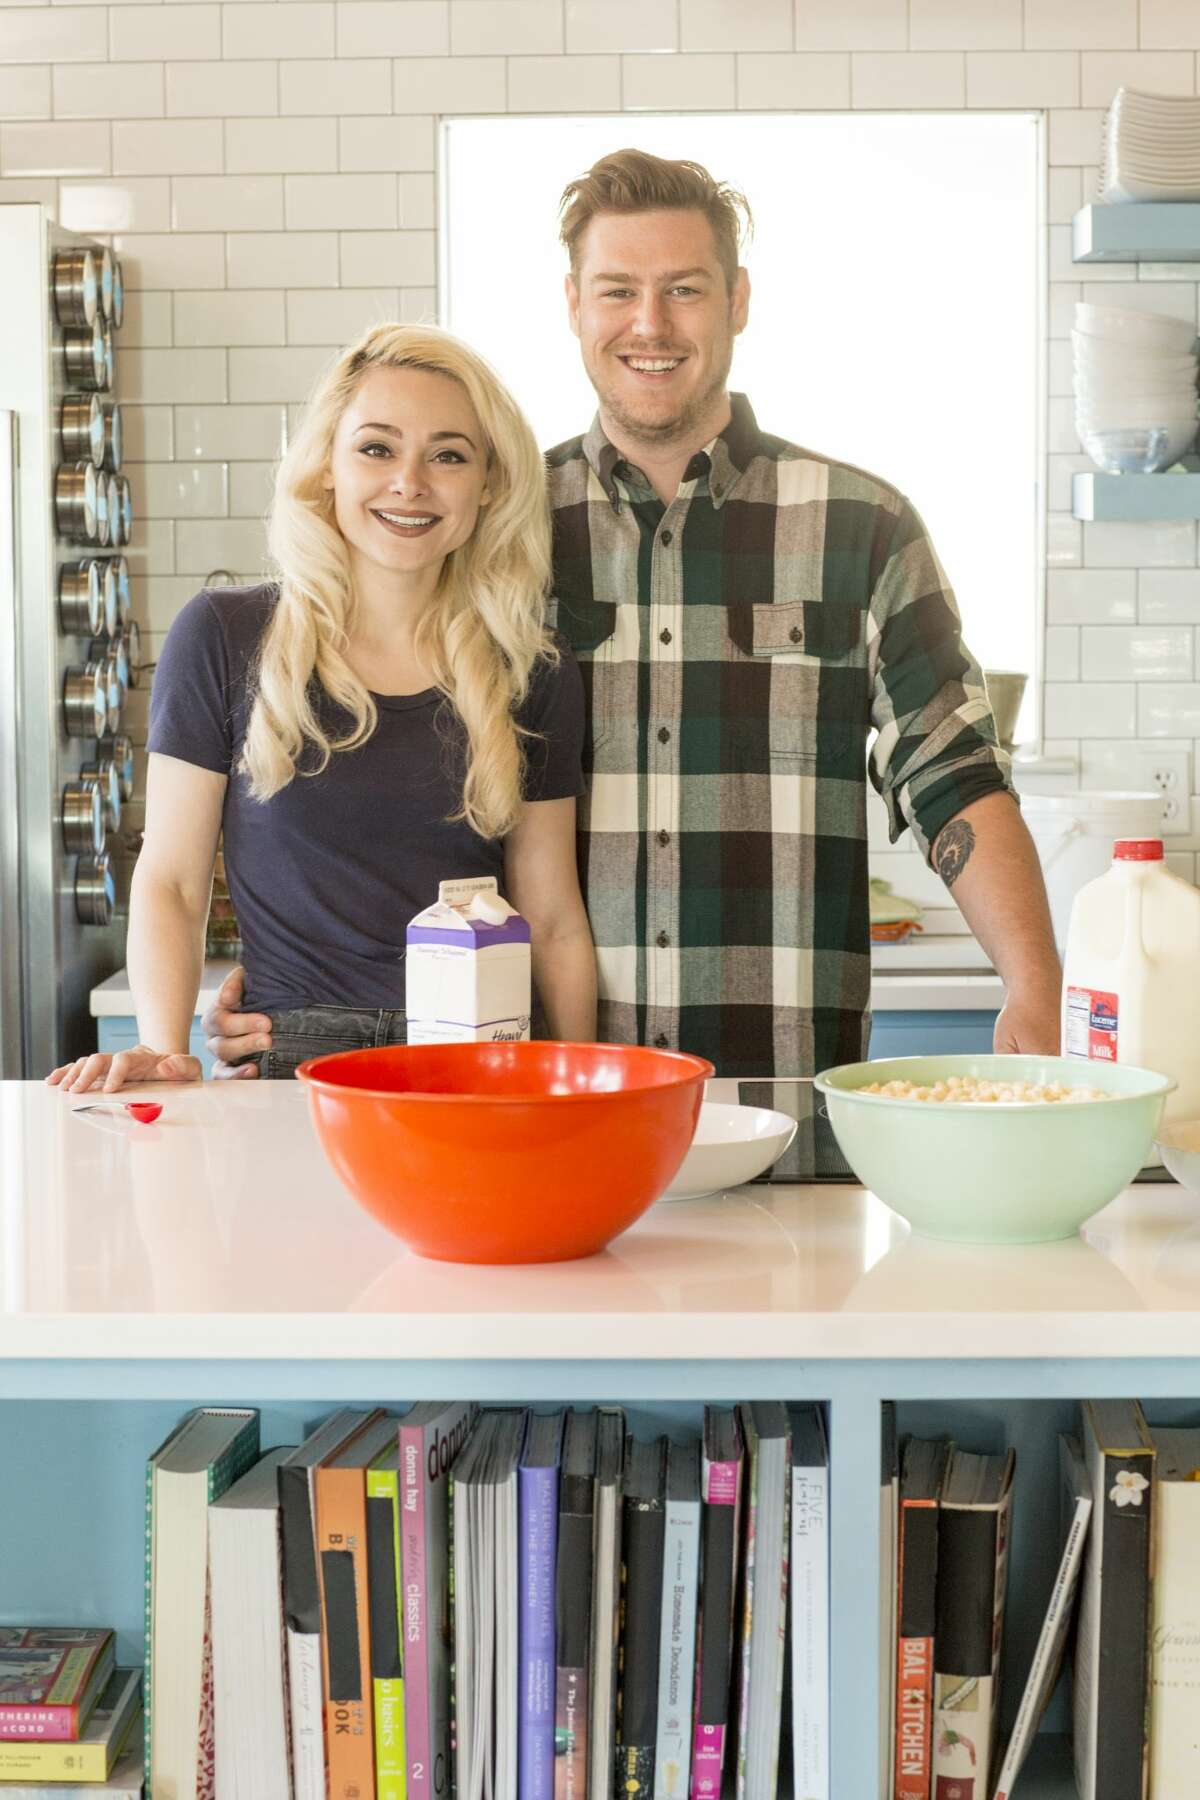 Natalie and Dave Sideserf in the kitchen, as seen on Food Network's first season of